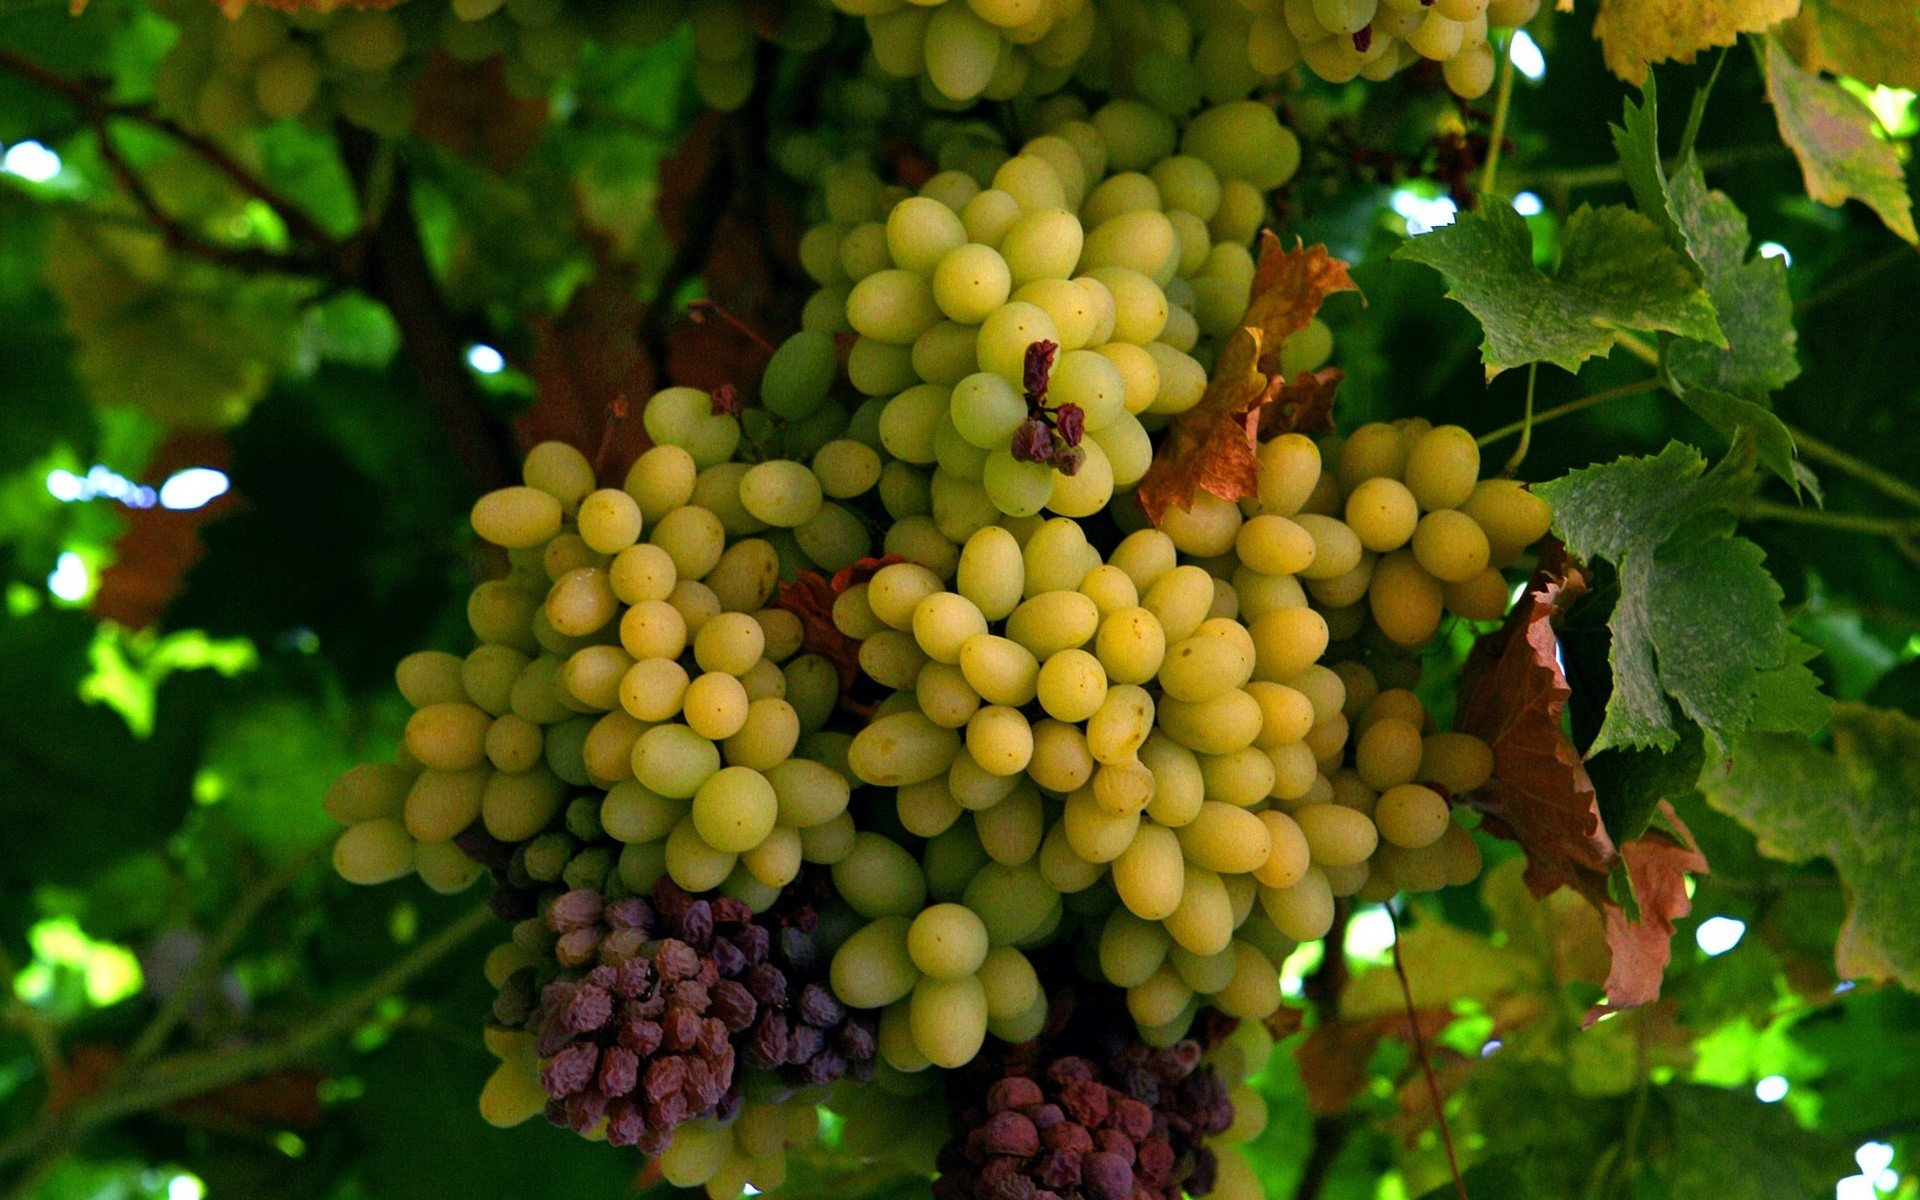 3d Wallpaper Avatar Grapes Full Hd Wallpaper And Background Image 1920x1200